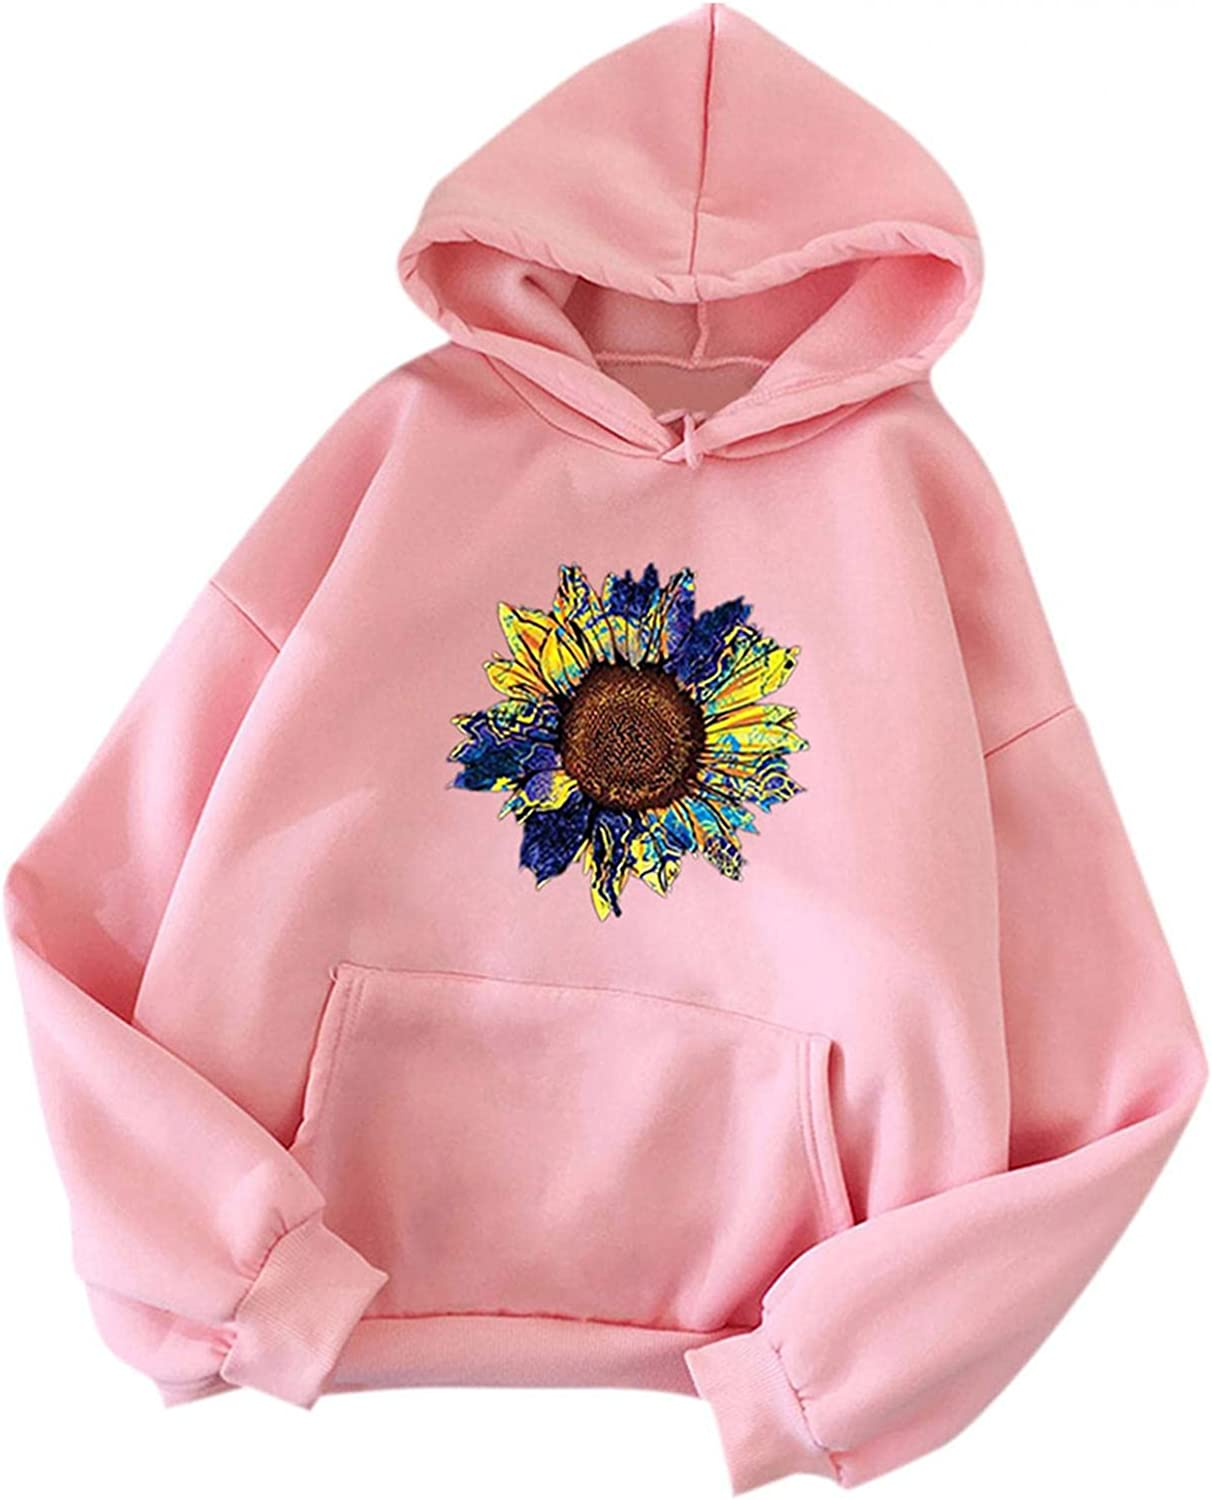 UOCUFY Womens Hoodies, Womens Casual Plus Size Cute Printing Sweatshirts Long Sleeve Pullover Hoodies Autumn and Winter